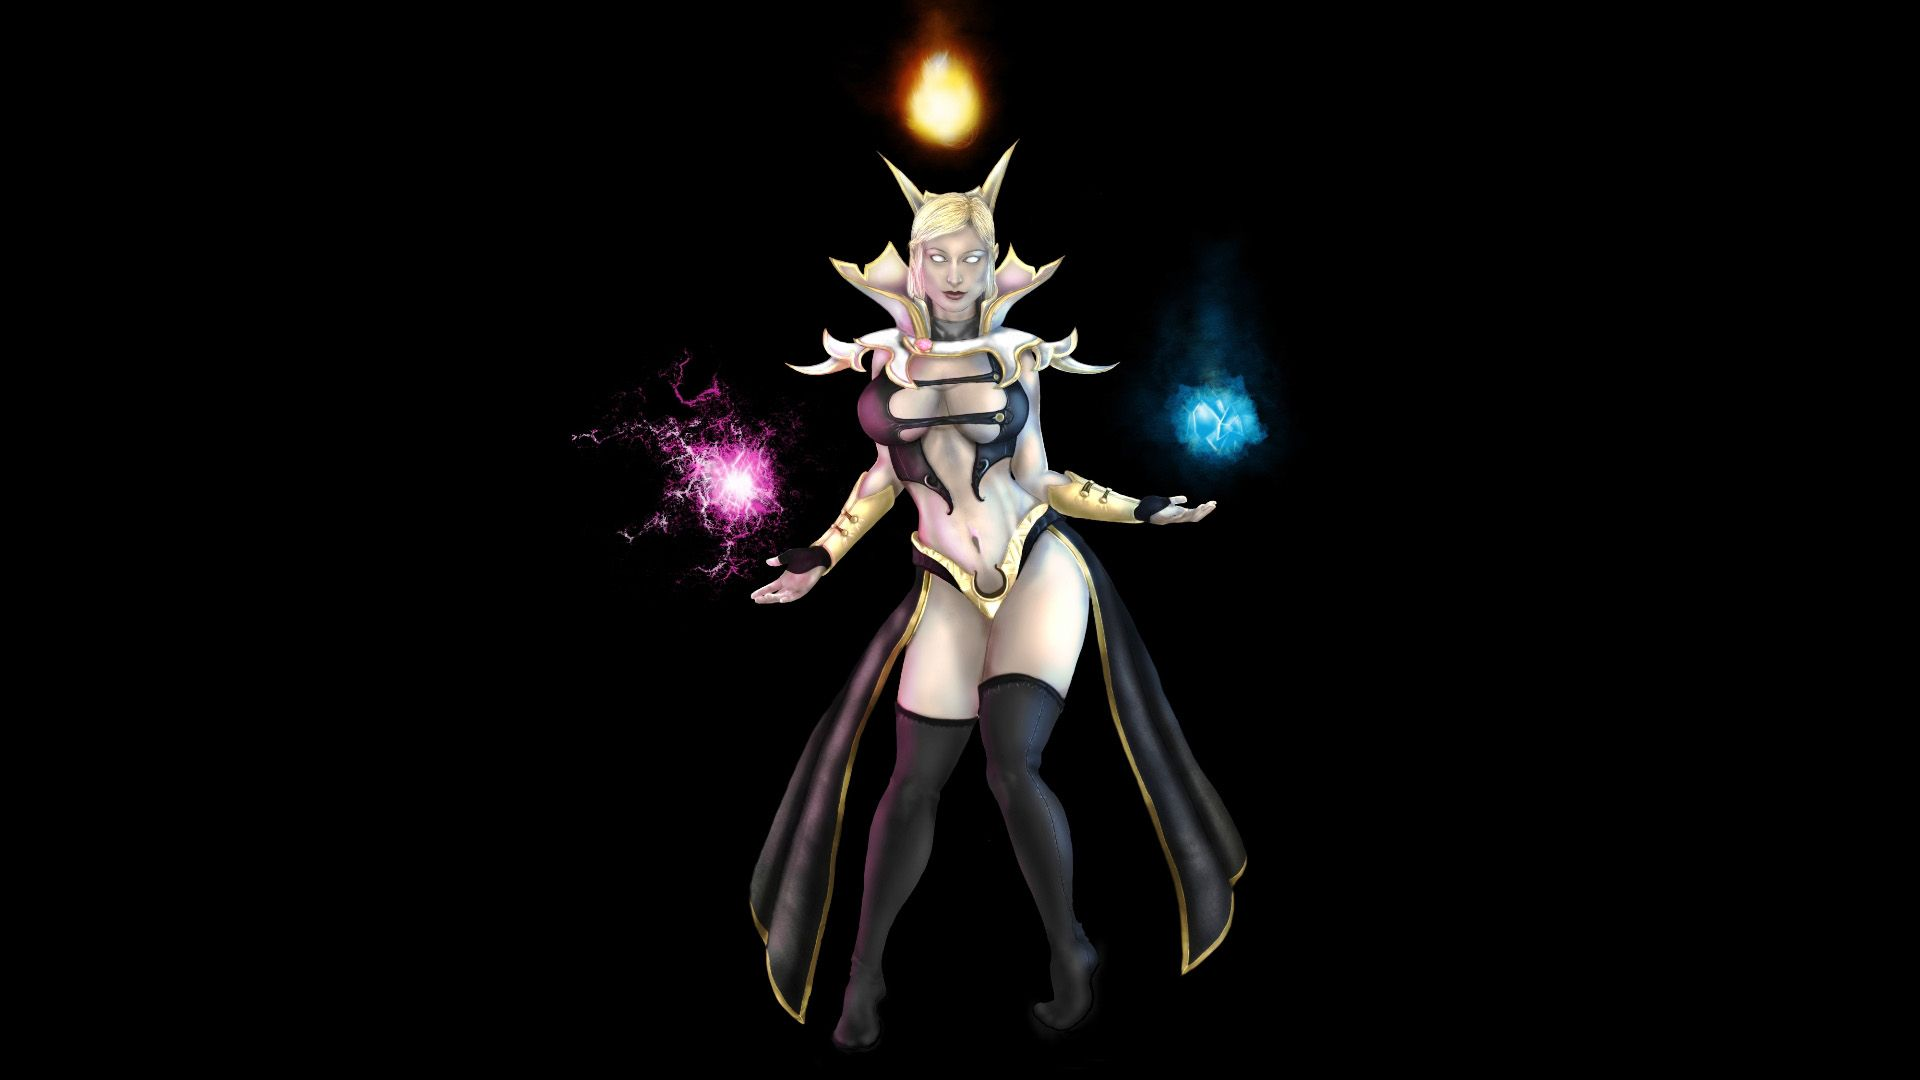 dota 2 invoker wallpapers 1080p is cool wallpapers other